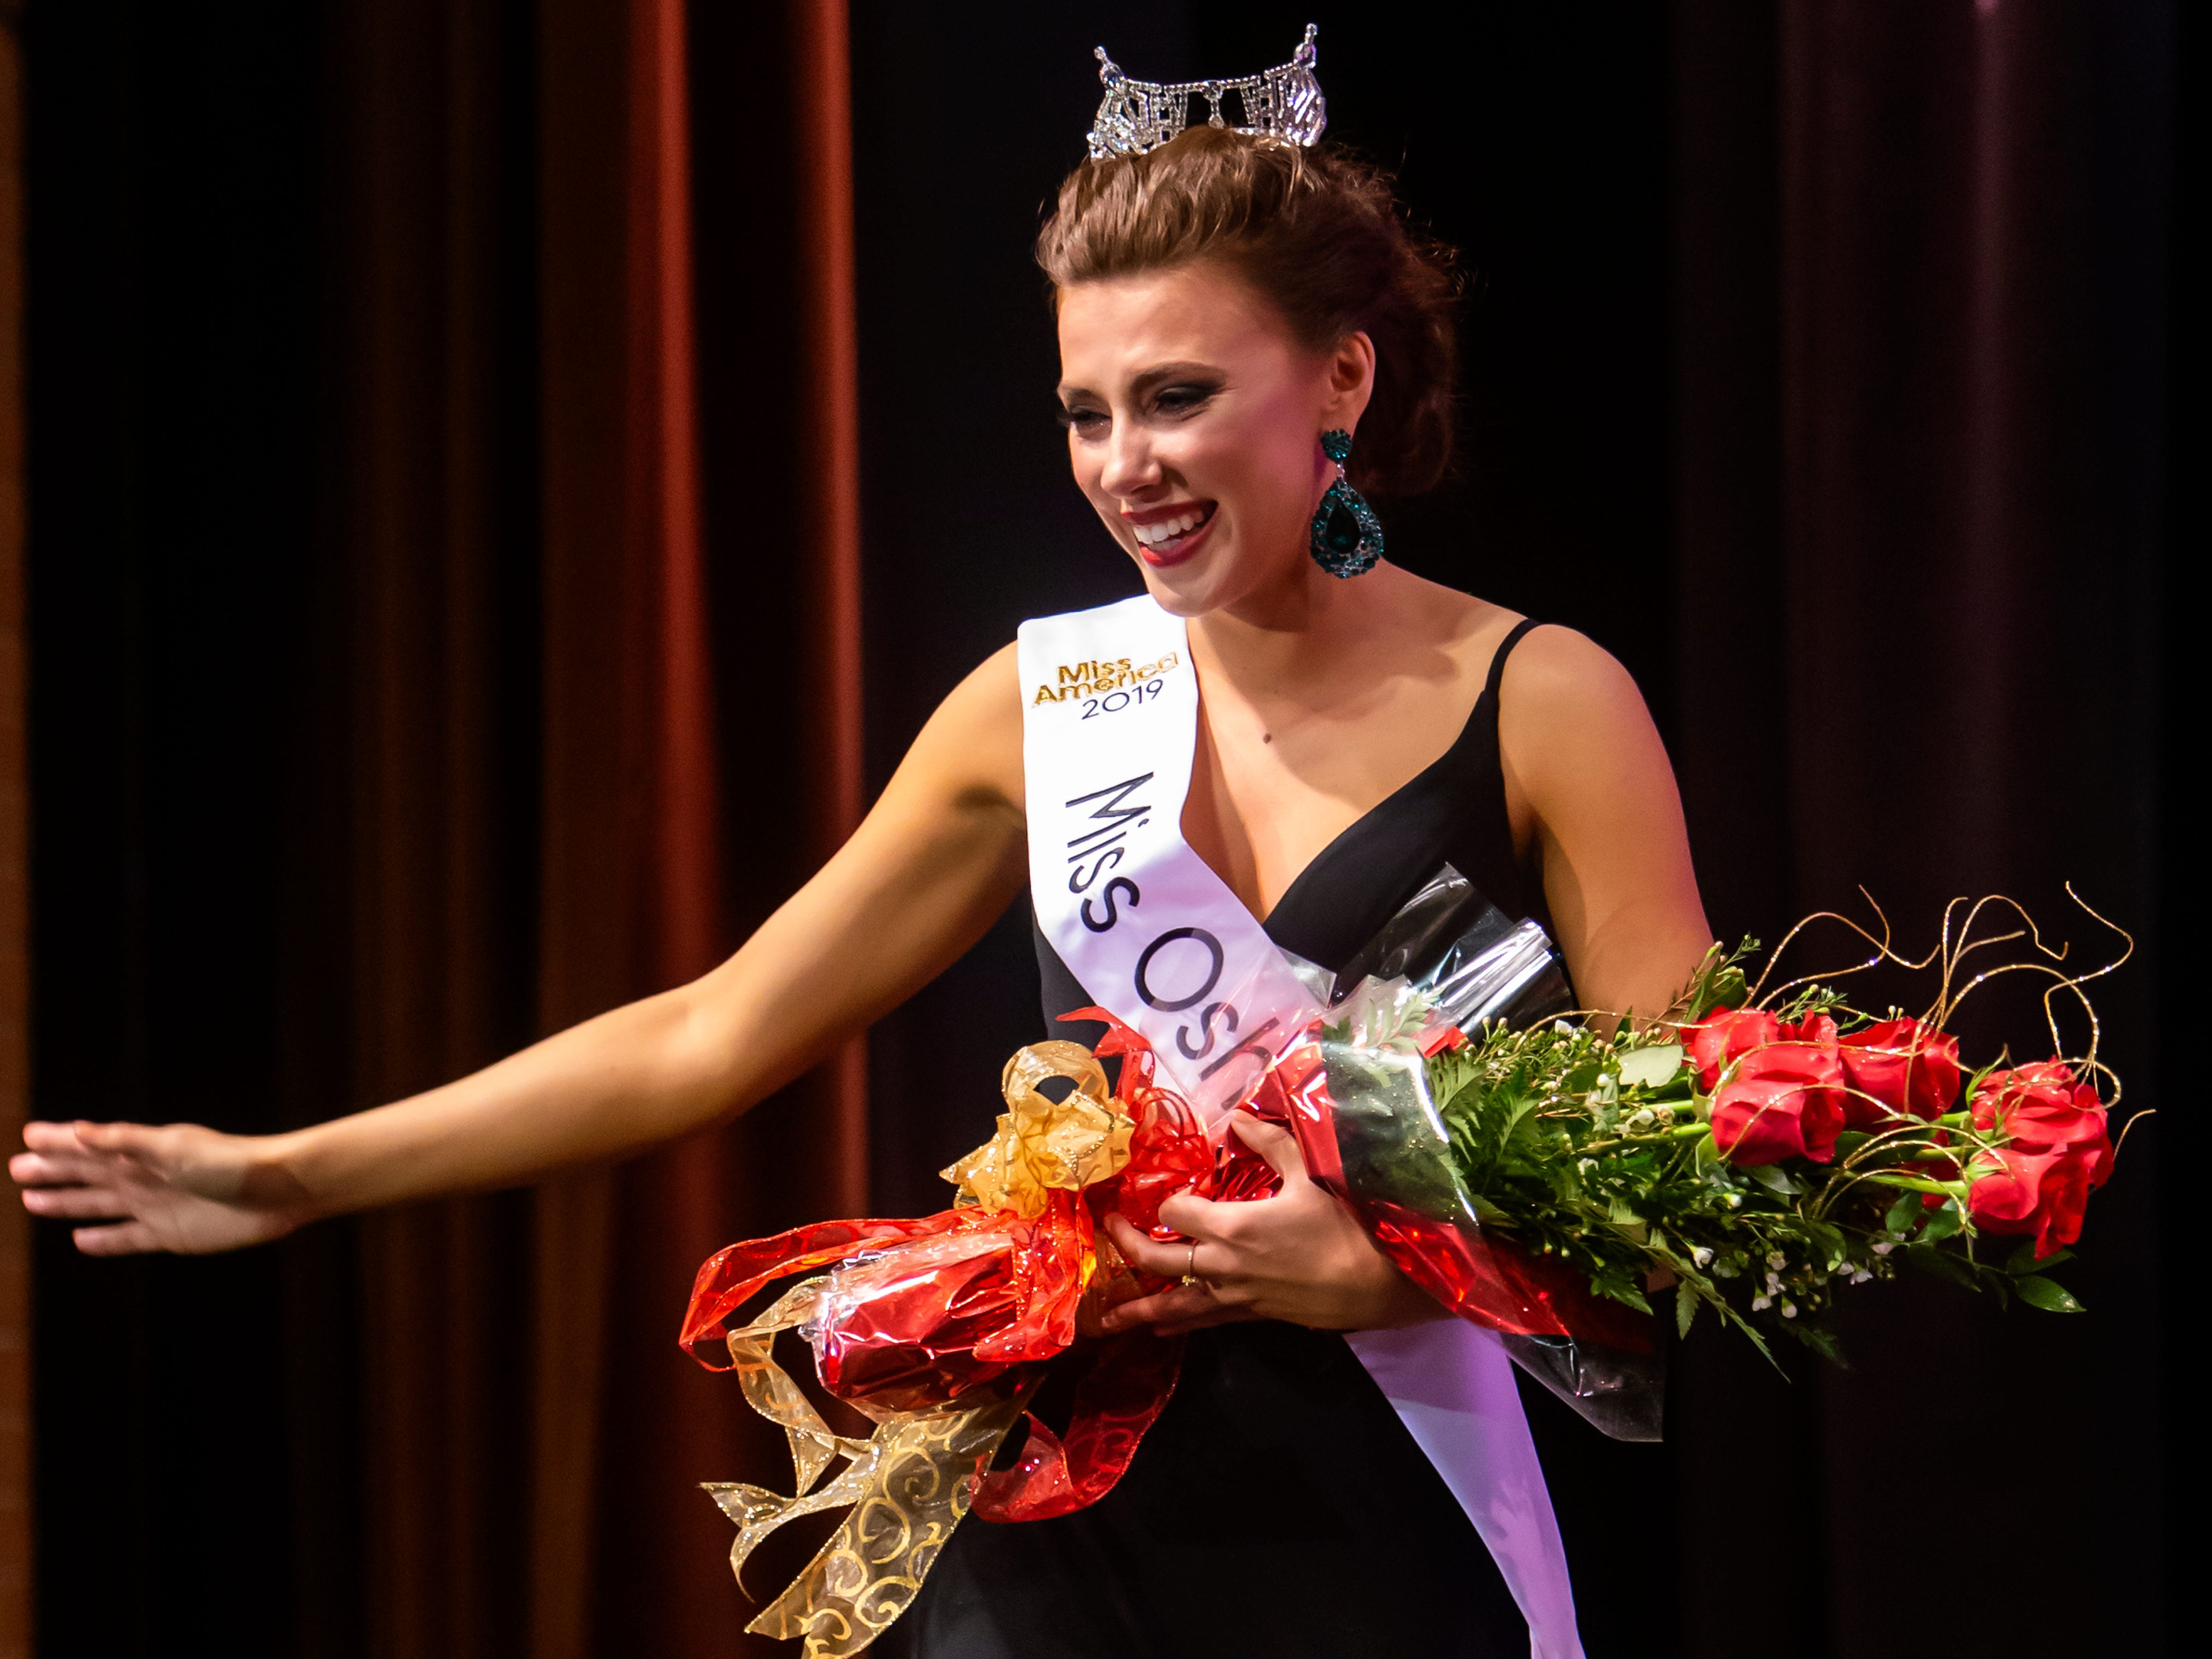 Katrina Mazier wins the Miss Oshkosh title during the Miss Oshkosh Scholarship Pageant Saturday, March 2, 2019, at Alberta Kimball Auditorium in Oshkosh, Wis.